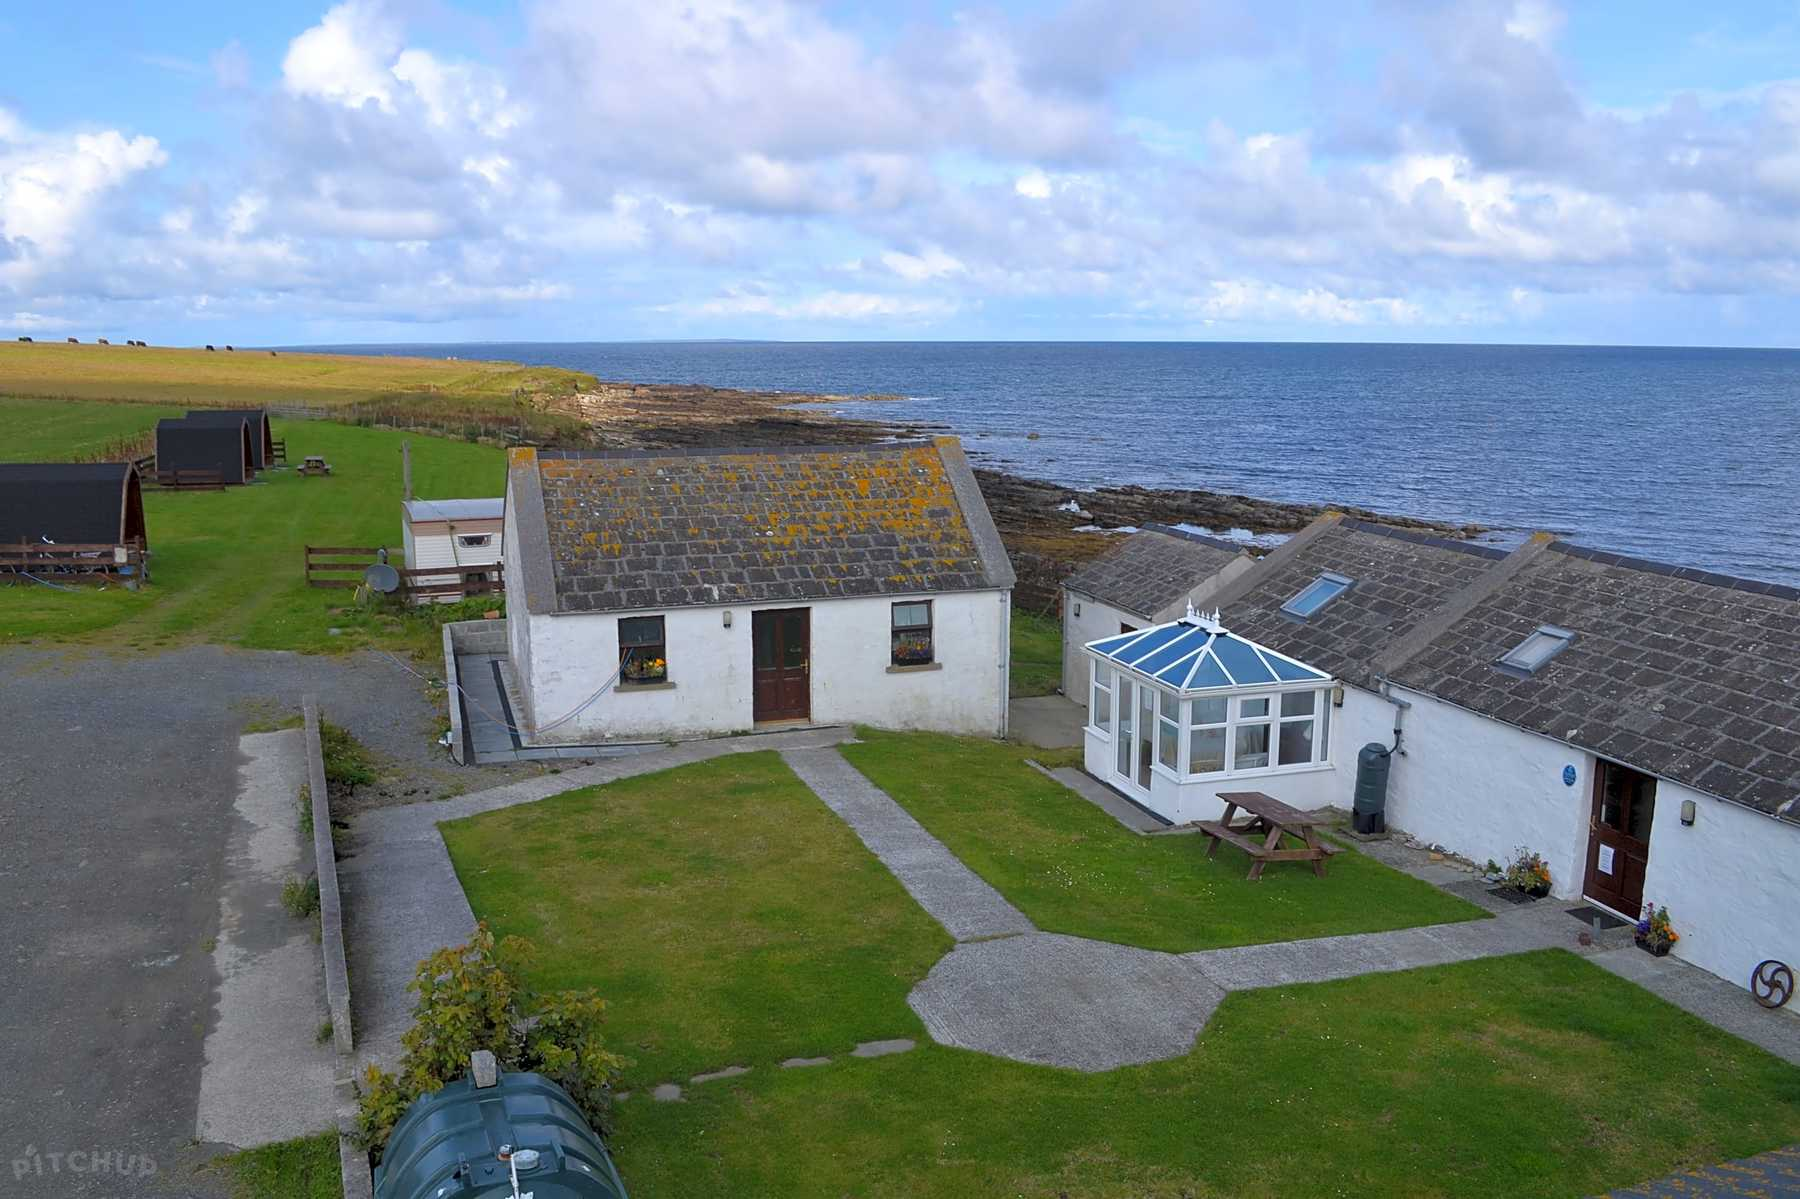 Ayre's Rock Hostel and Camp Site, Isle Of Sanday - Pitchup®